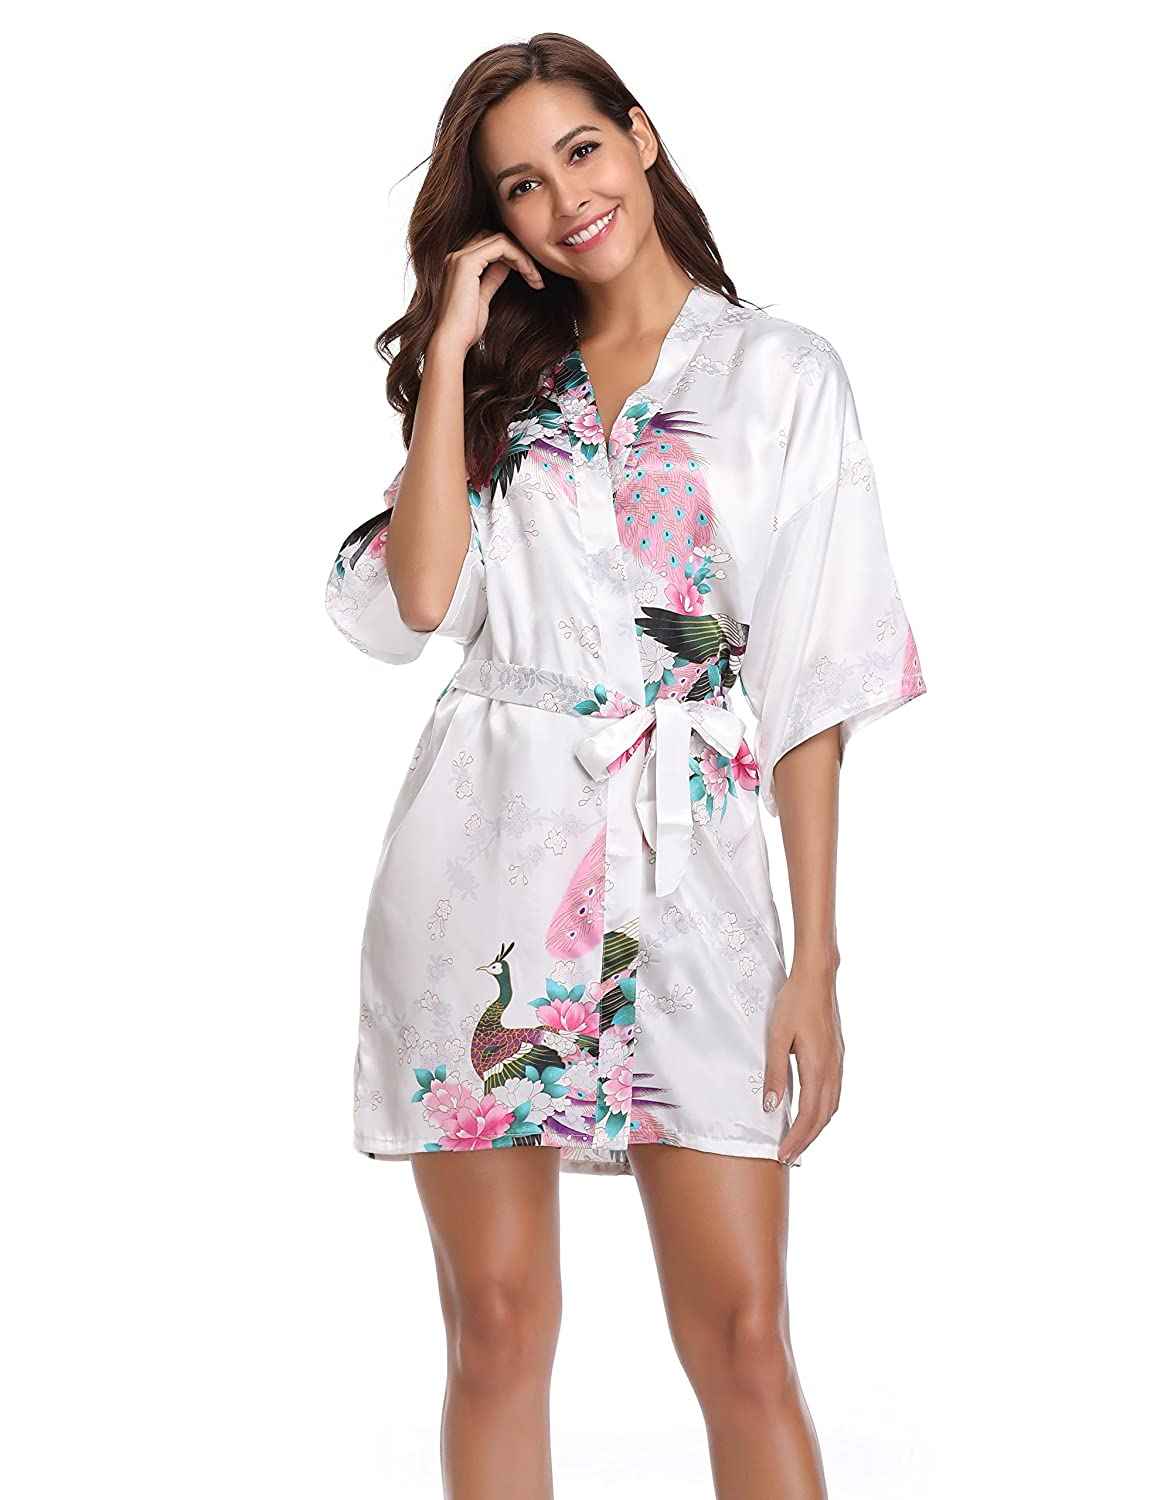 5f1d67a885 Vlazom Women Kimono Robes Satin Dressing Gown Peacock and Blossoms Sleep  Lounge Nightwear Short Silk Bride Bridesmaid Robe  Amazon.co.uk  Clothing